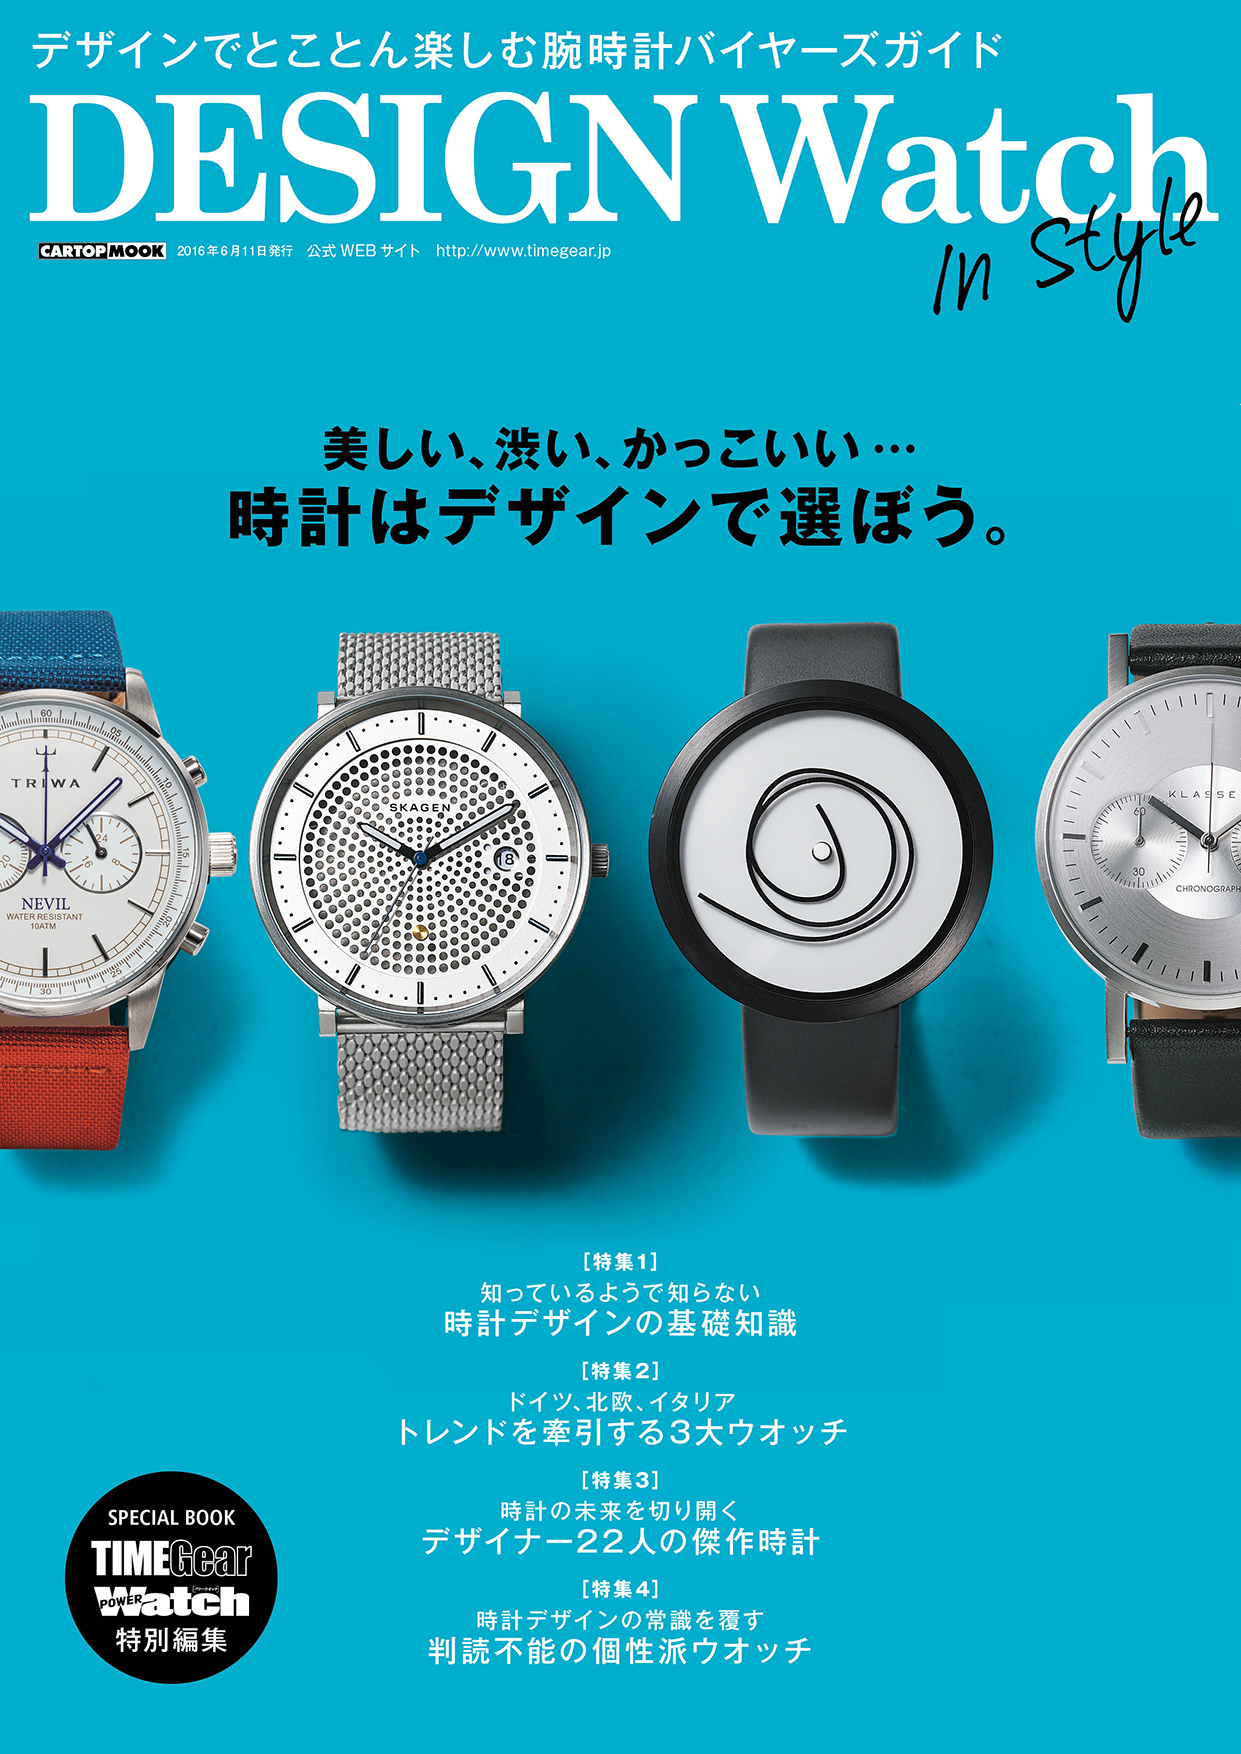 C's-Factory|書籍|DESIGN Watch In Style